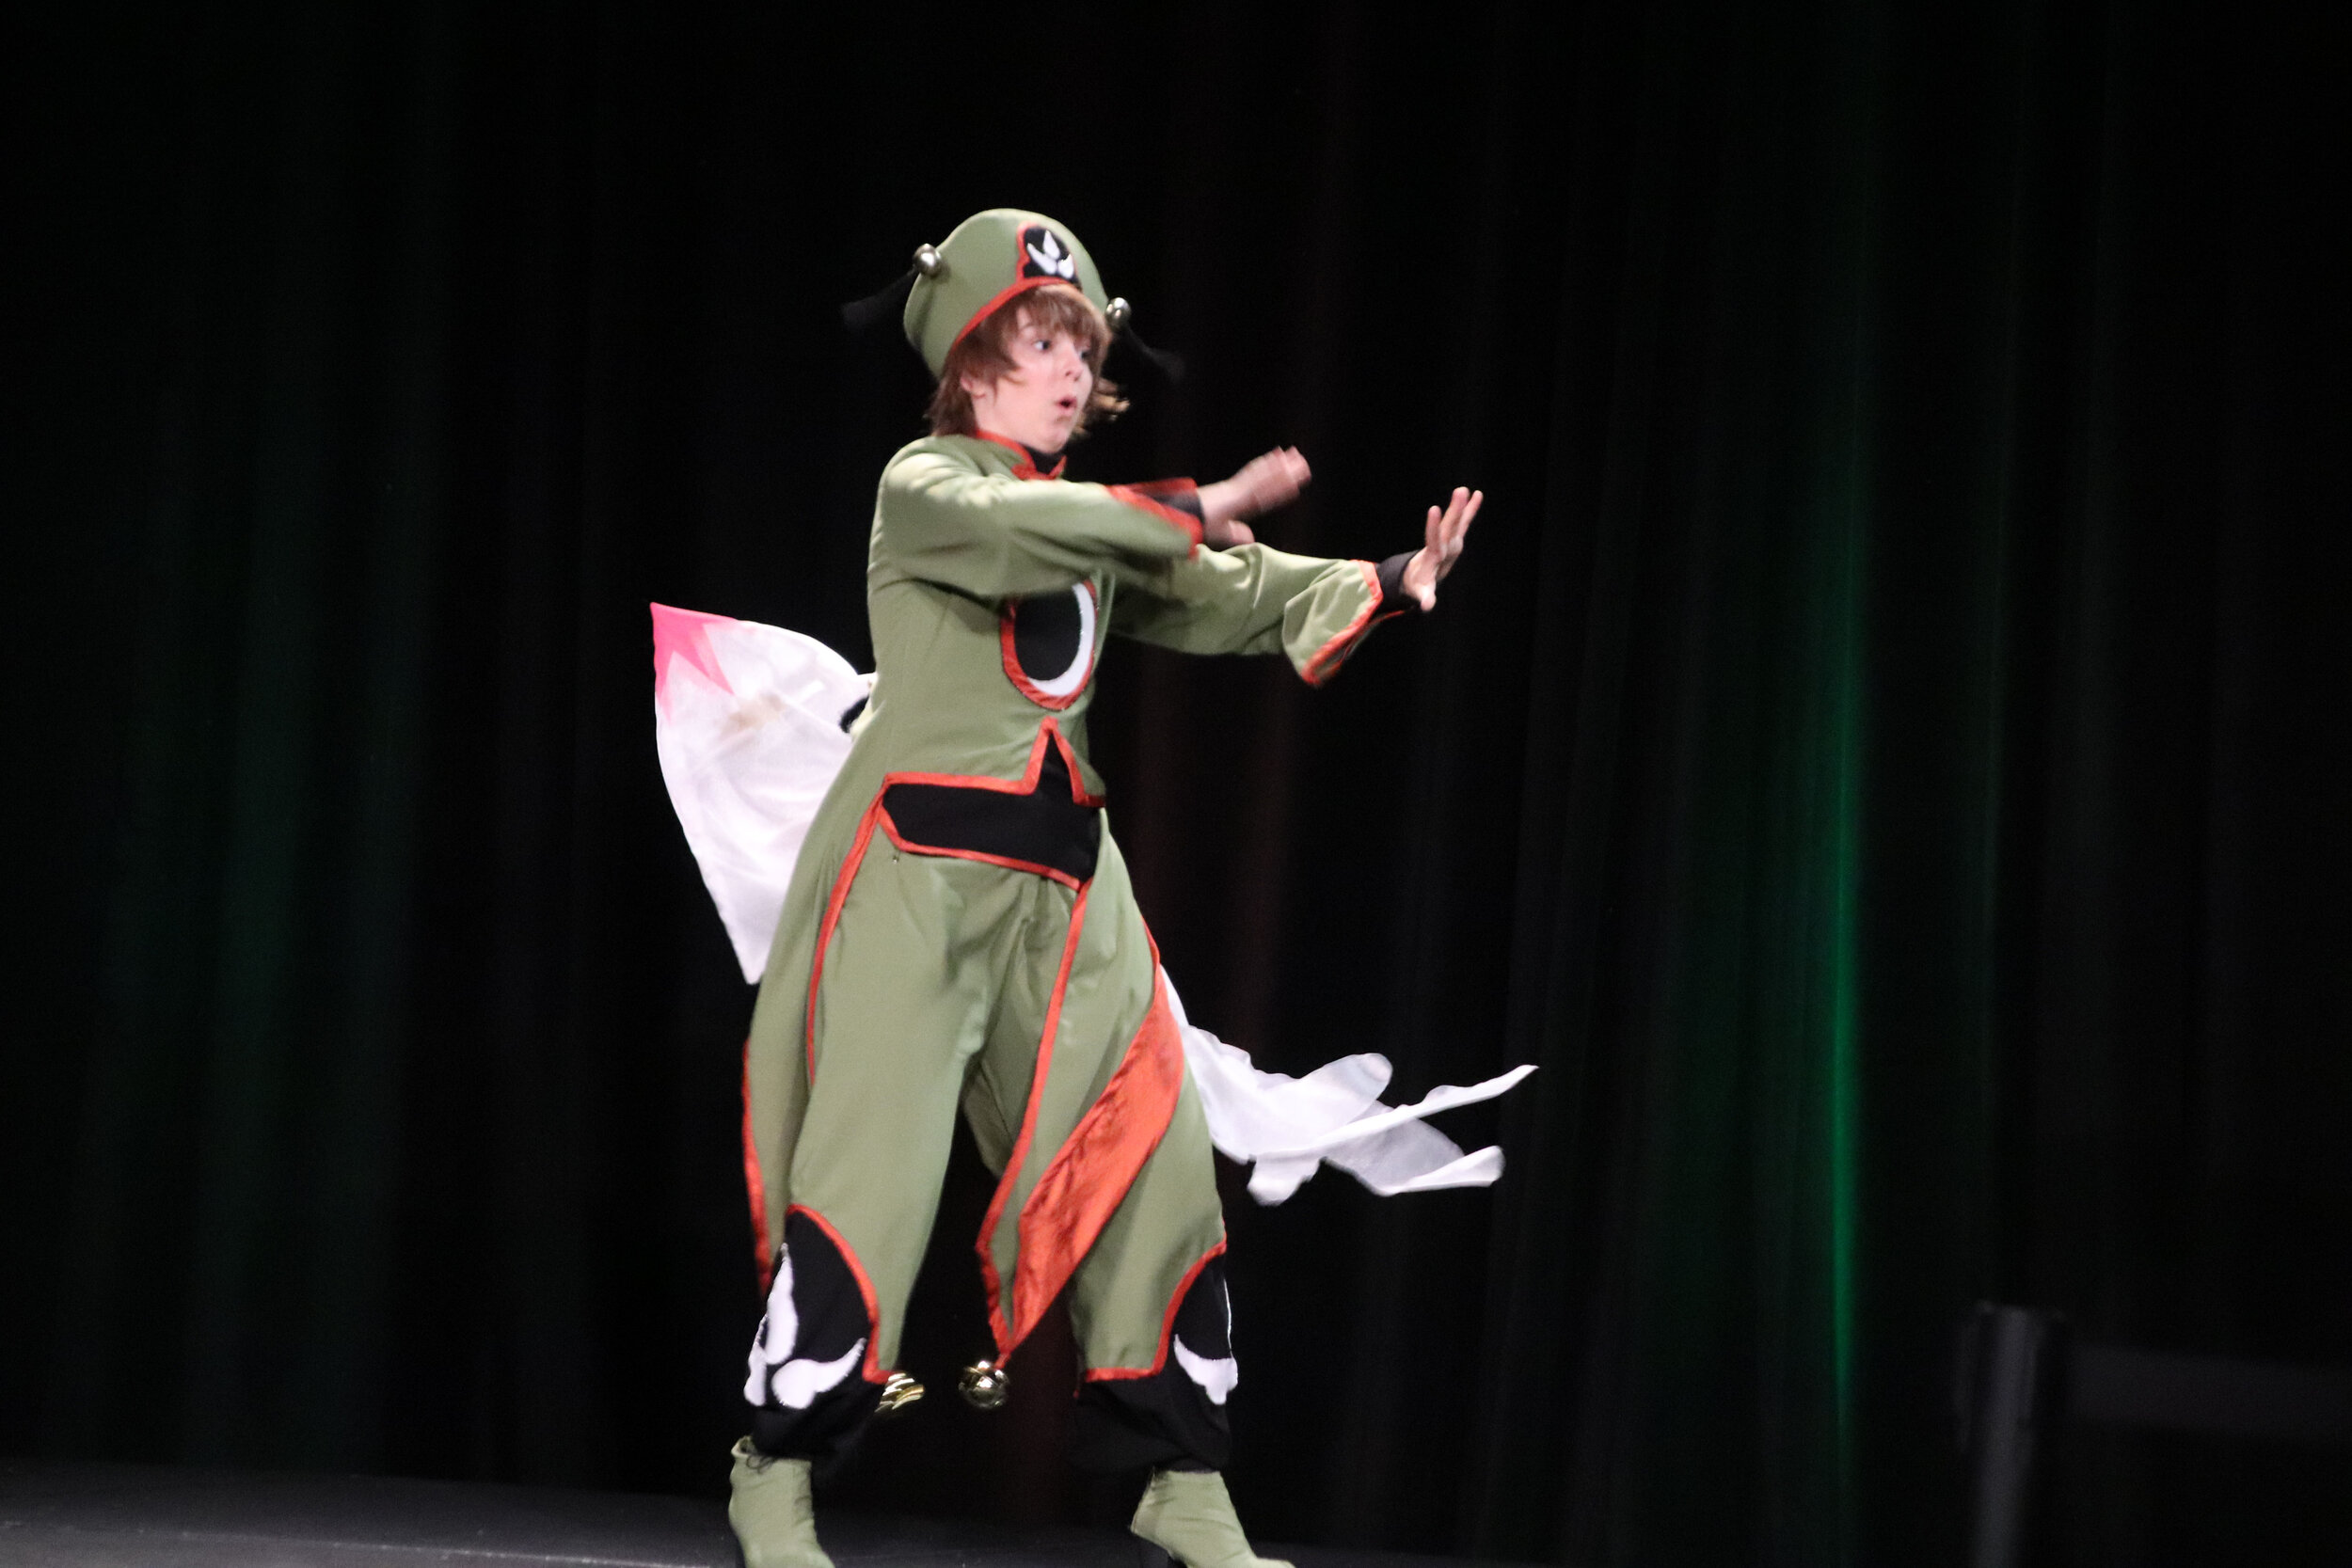 NDK Cosplay Contest 2019-205.jpg